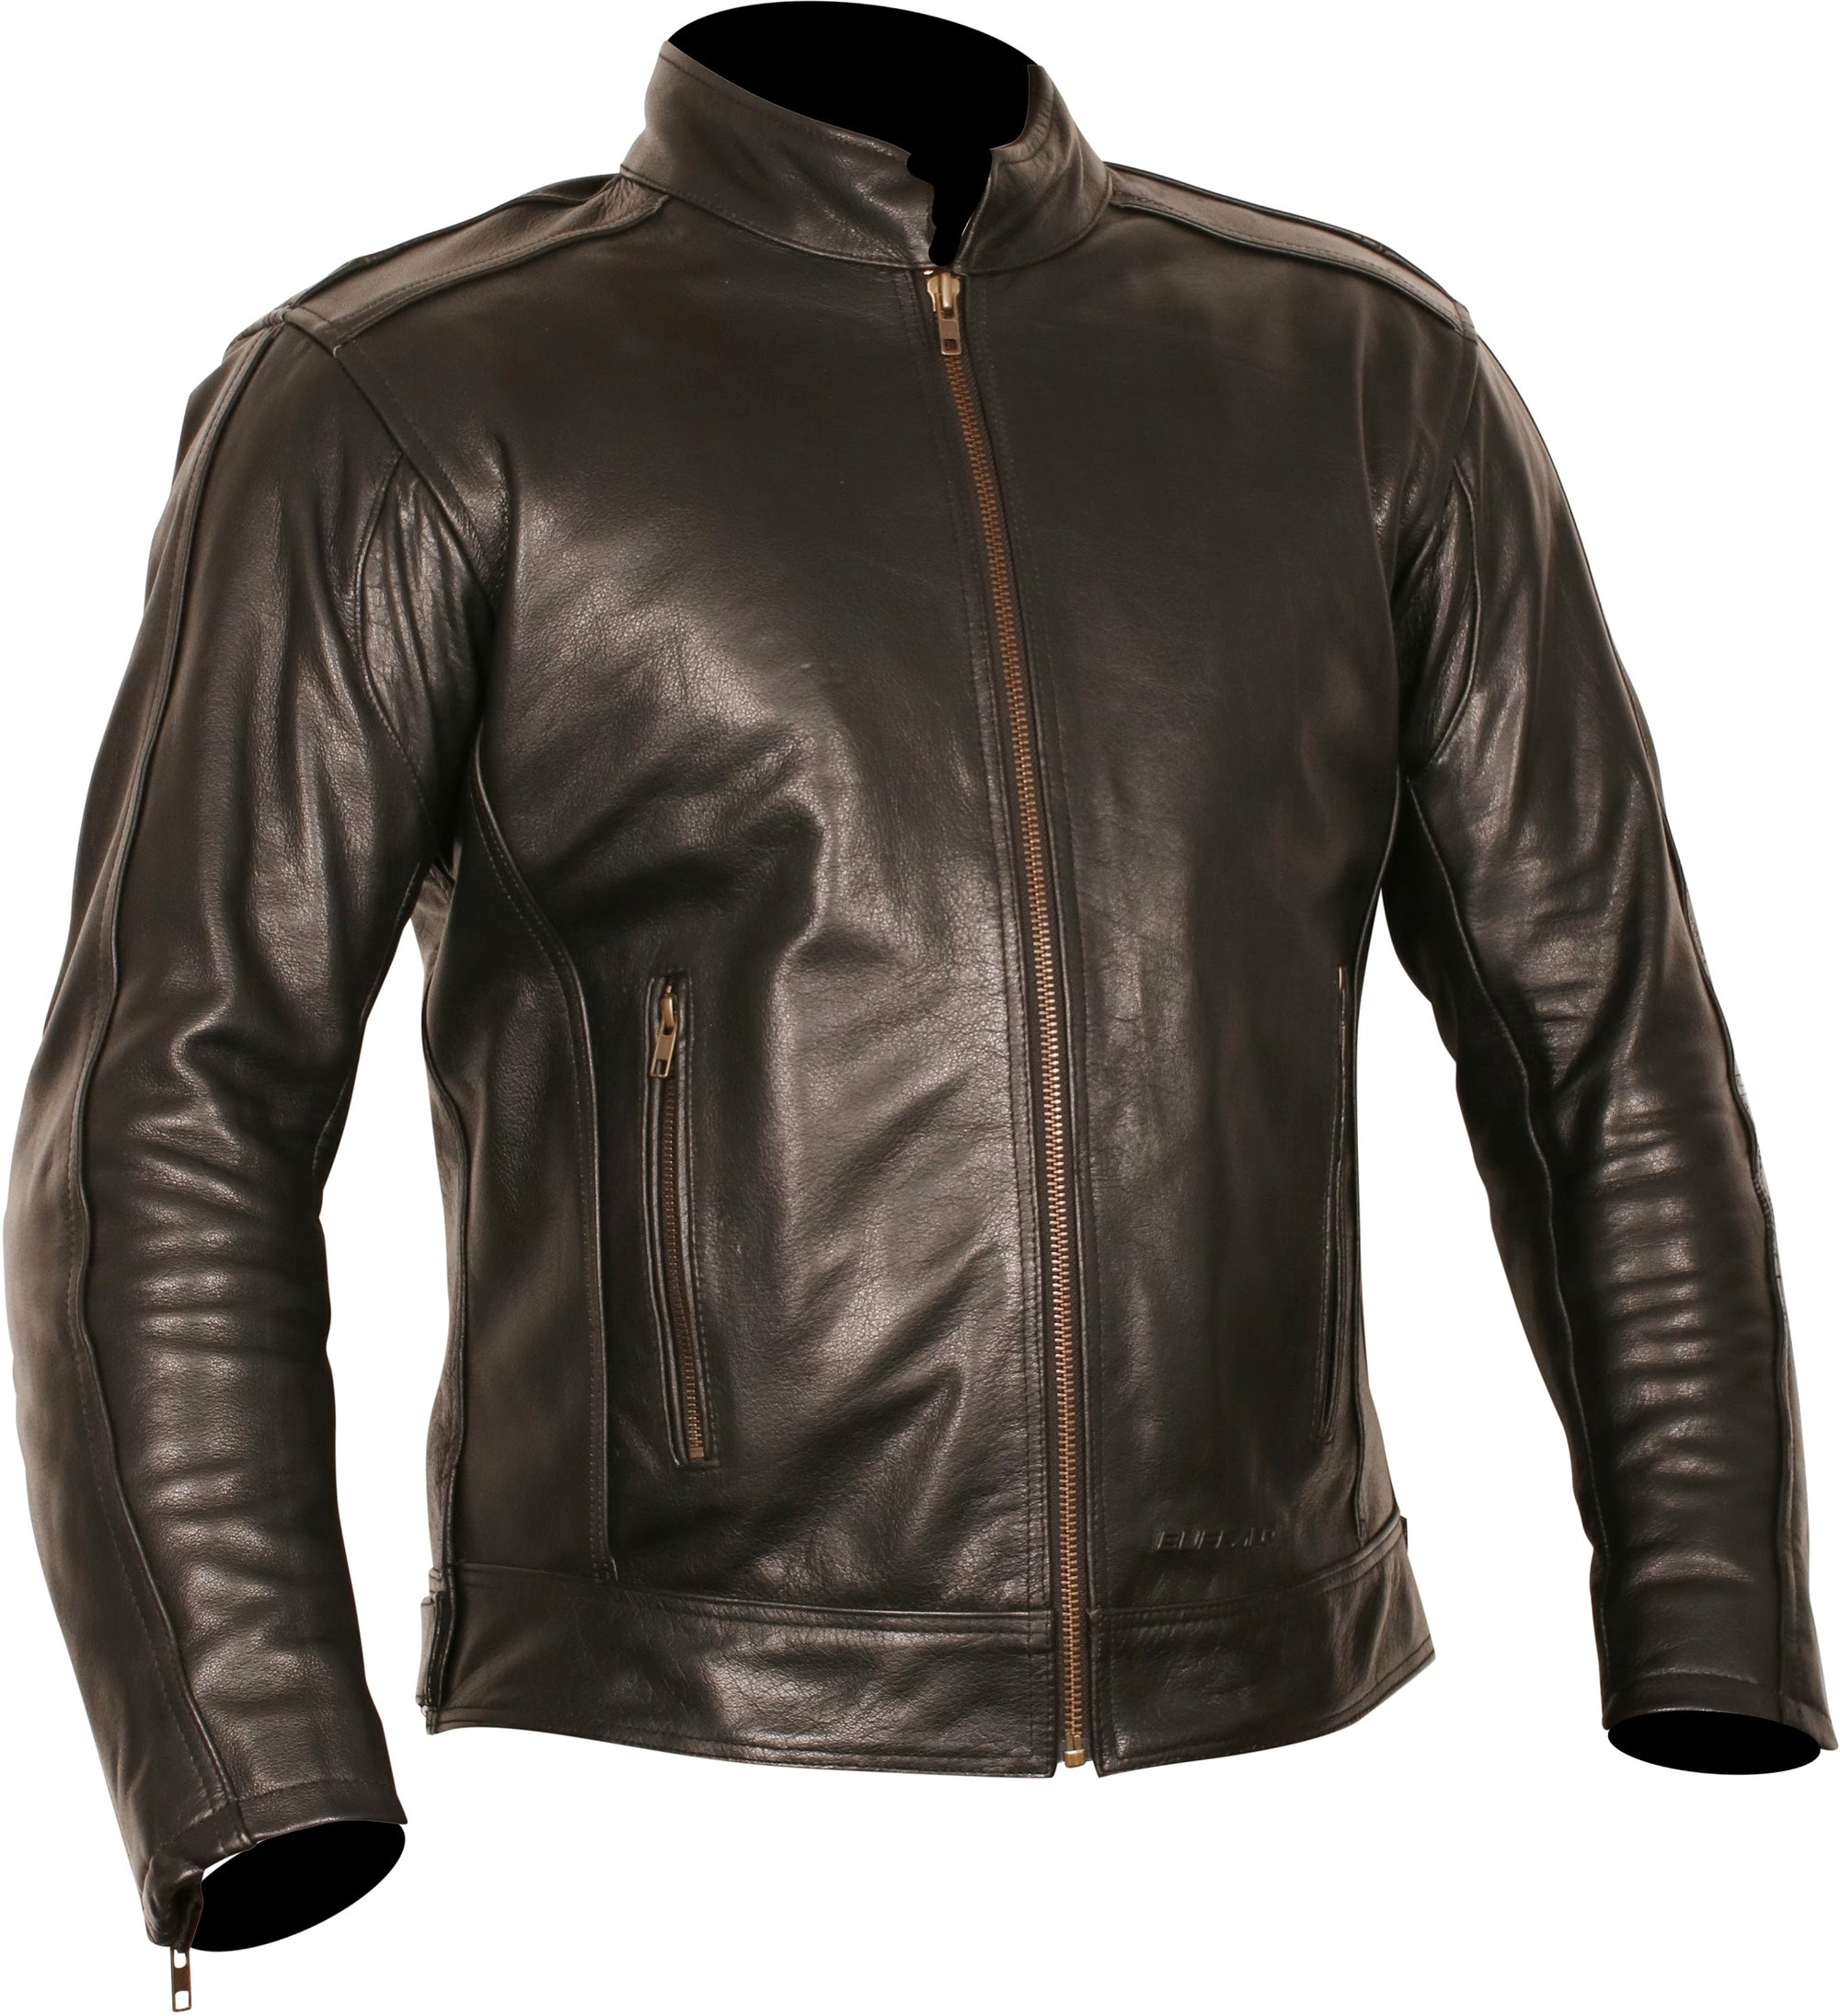 Buffalo Jacket - Navigator, Jacket, Buffalo - Averys Motorcycles